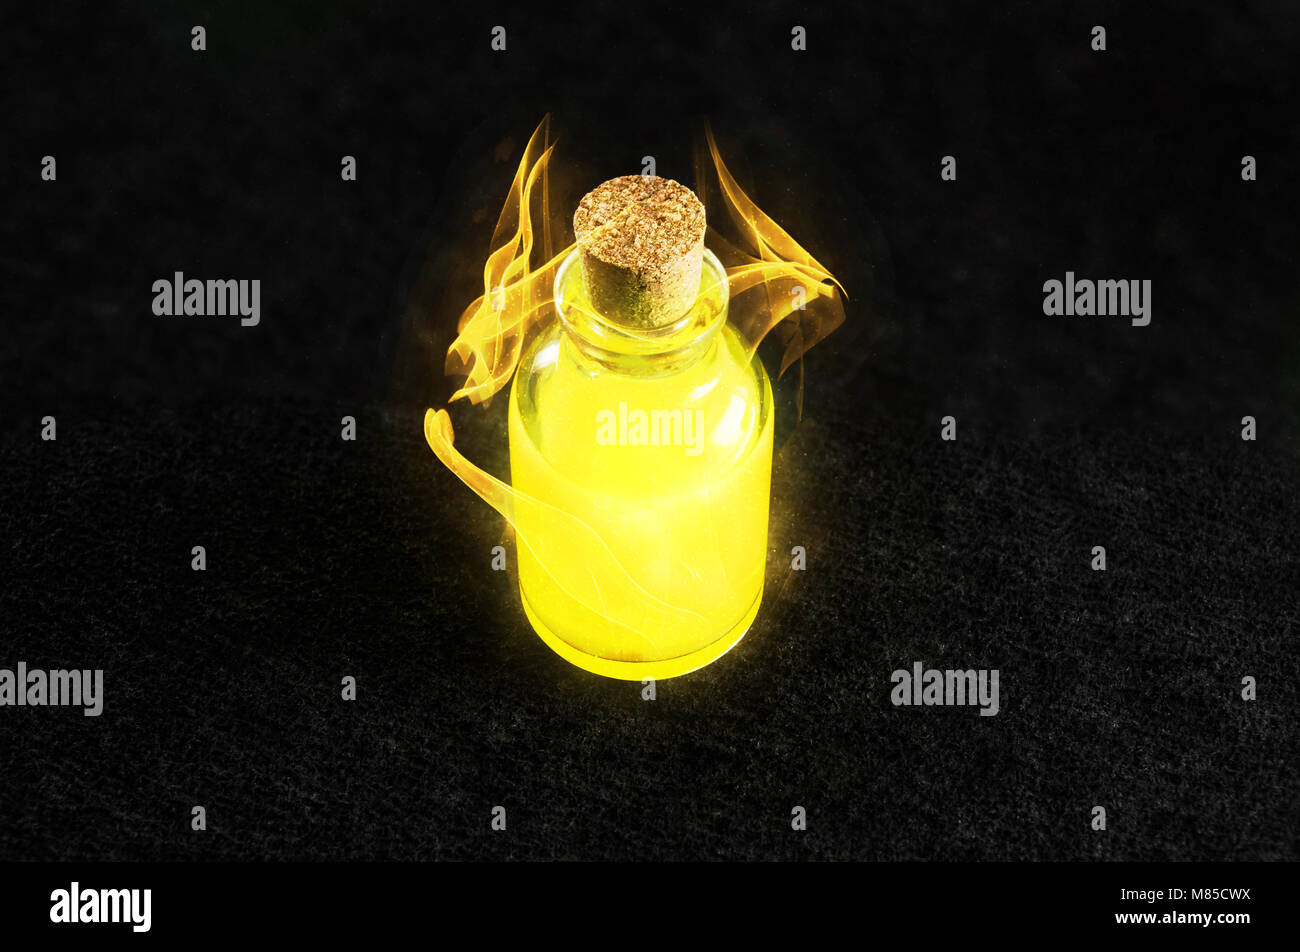 Golden magical liquid concept. Gaming power potion. Healing and mana potion. Vibrant liquid with a magic spell around. - Stock Image